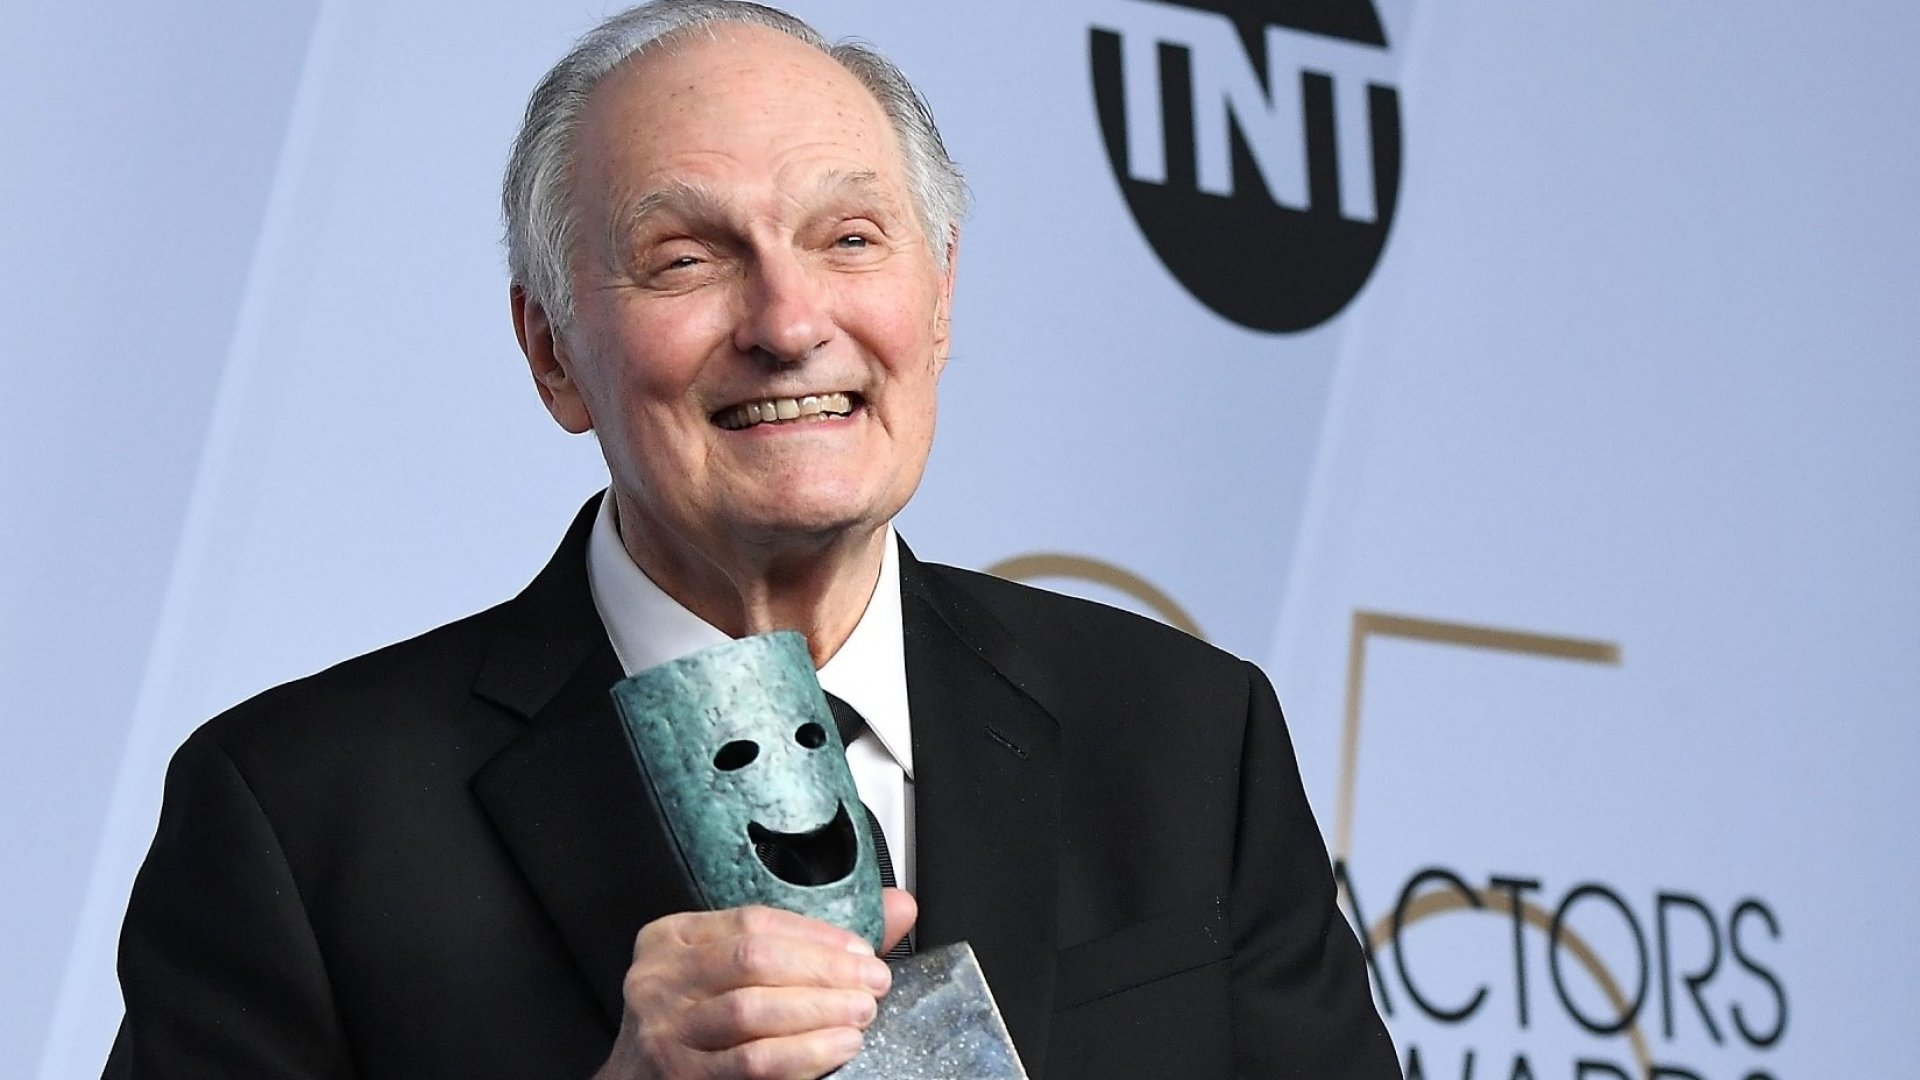 Alan Alda Just Gave the Best Speech of His Life. Here's the 1 Trick He Uses to Connect With People